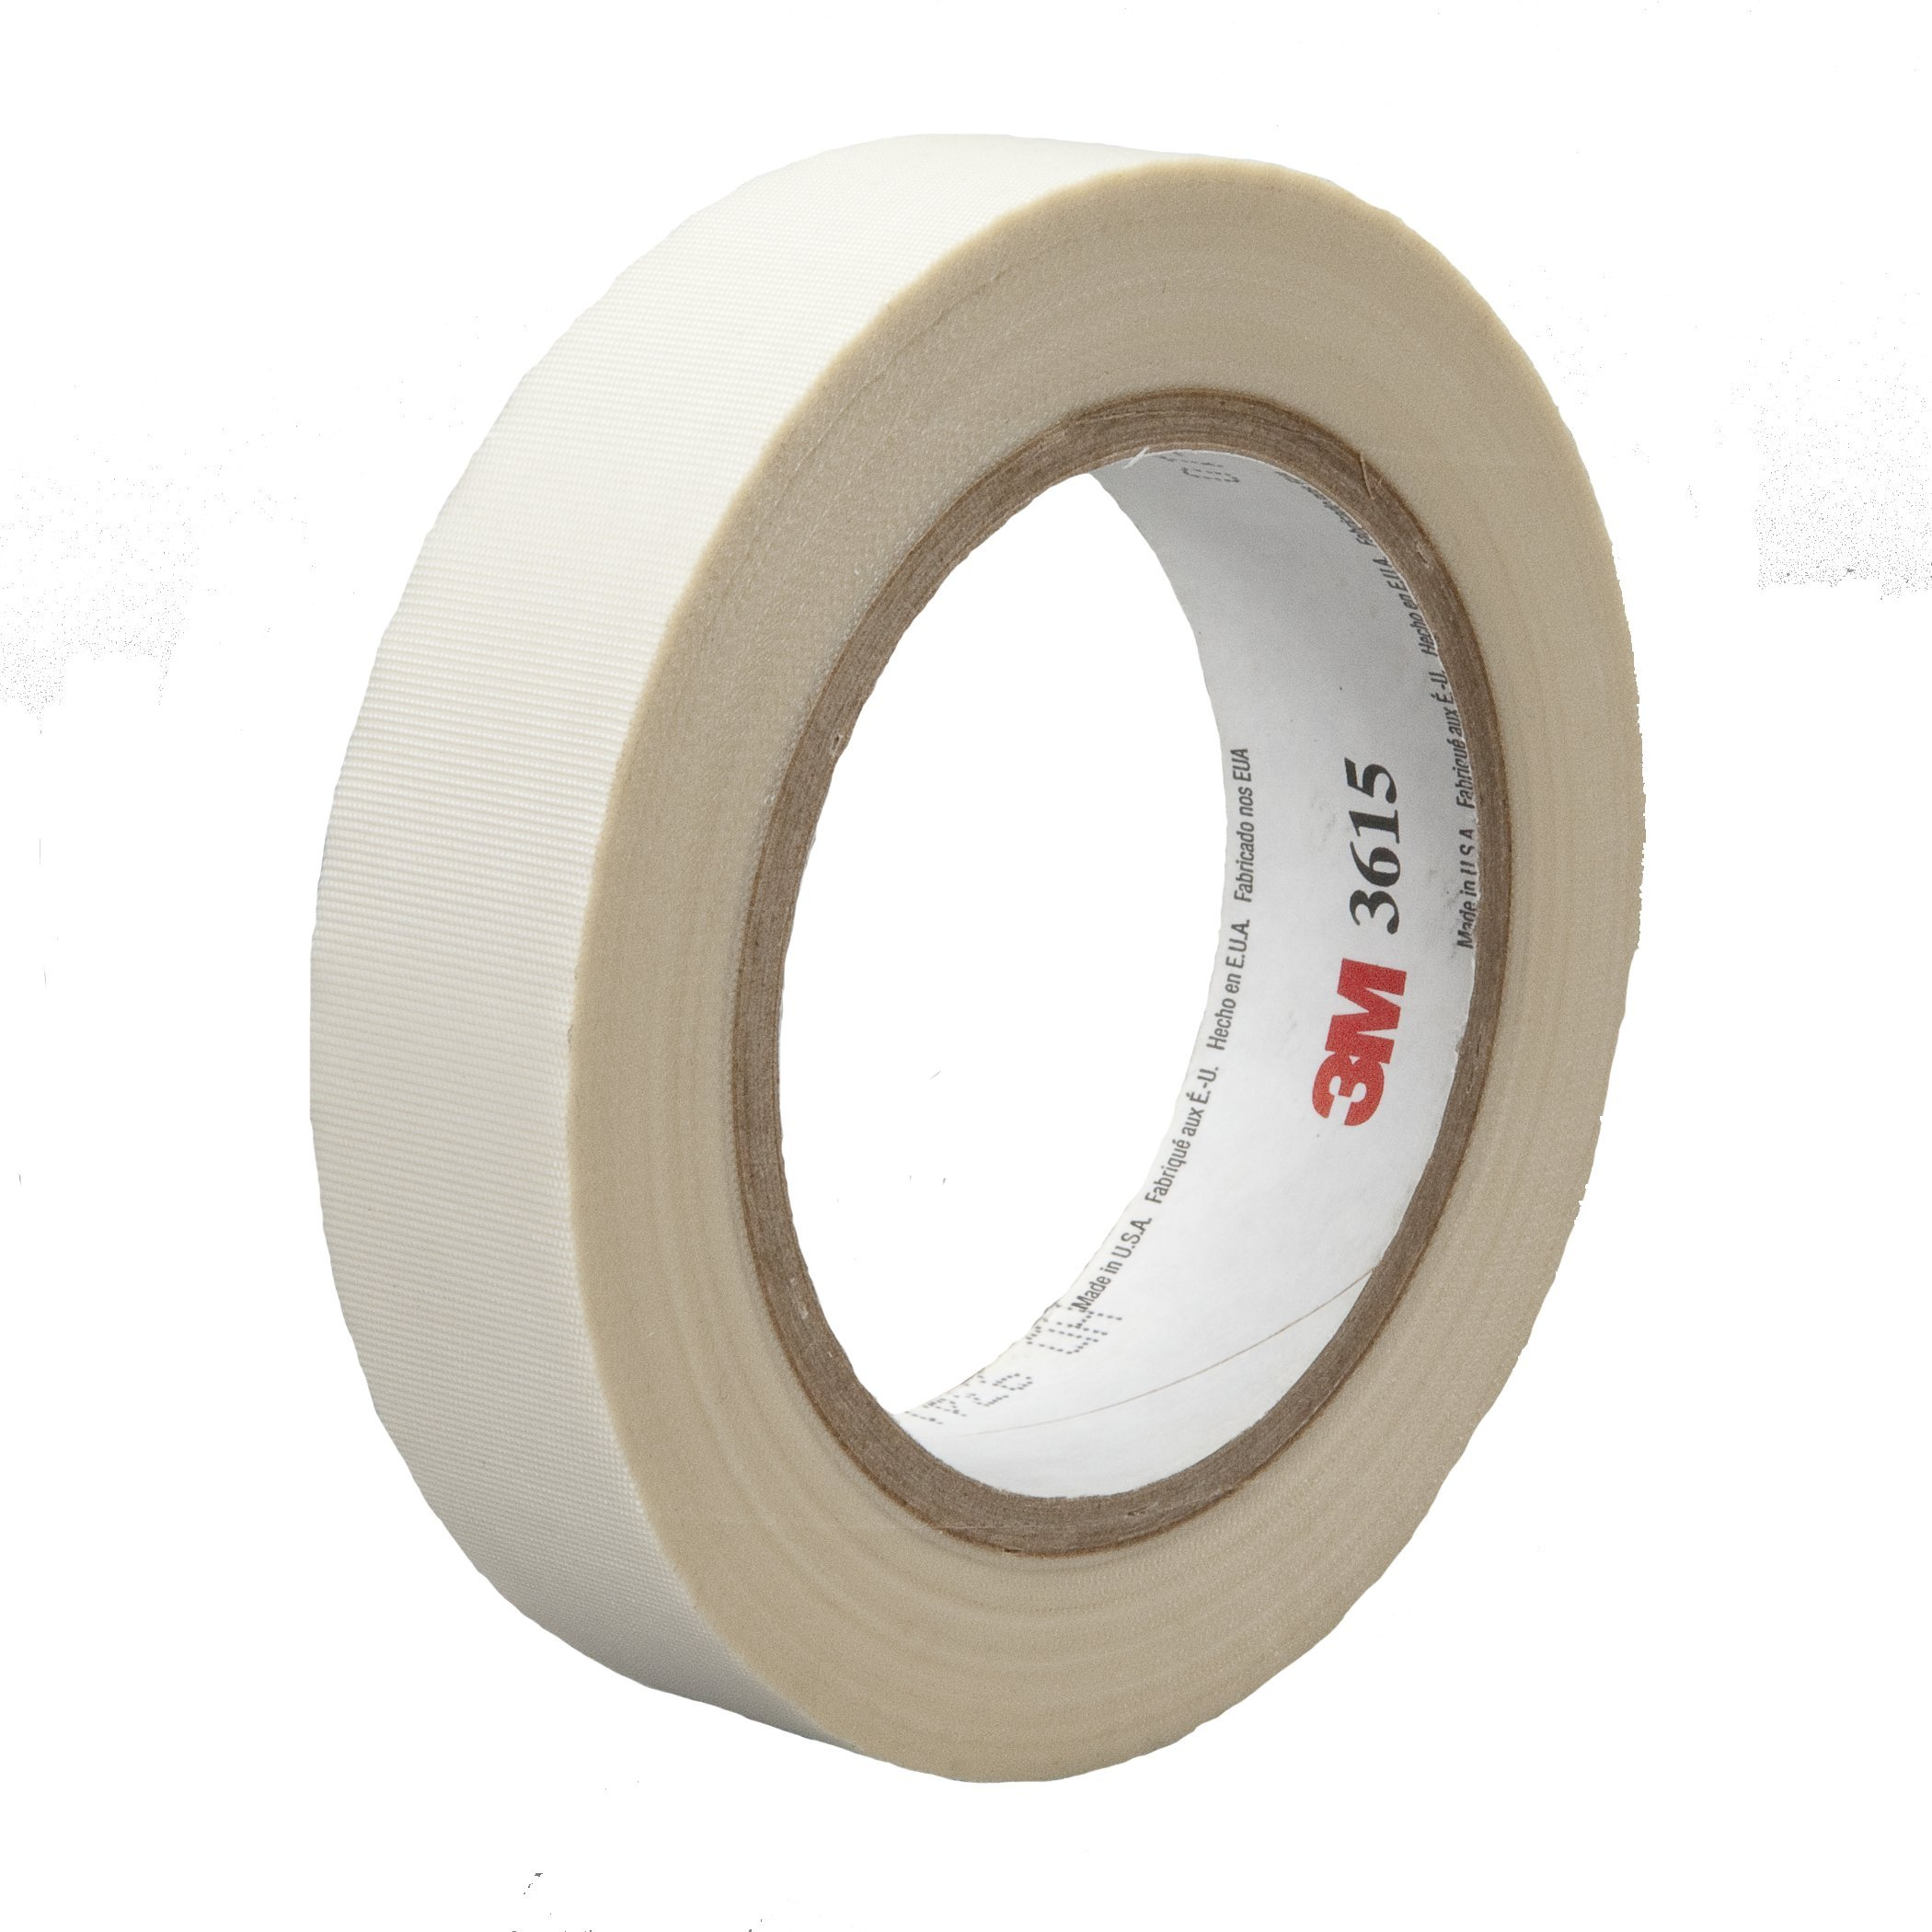 3M General Purpose Glass Cloth Tape 3615 White, 1 in x 36 yd 7.0 mil (Case of 36)